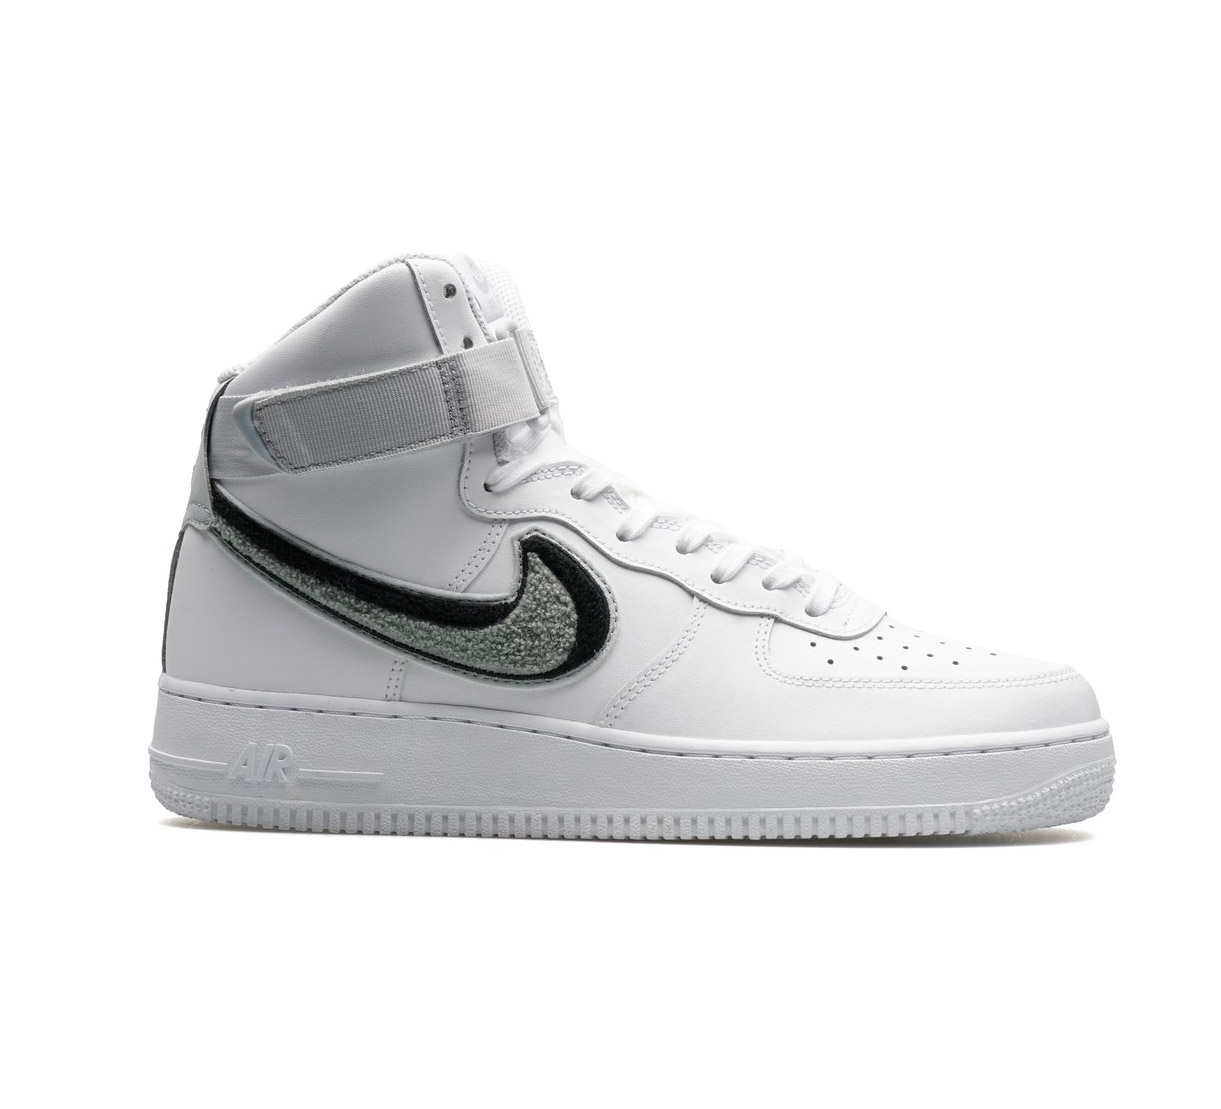 huge selection of 9b028 1c8a5 On Sale: Nike Air Force 1 High